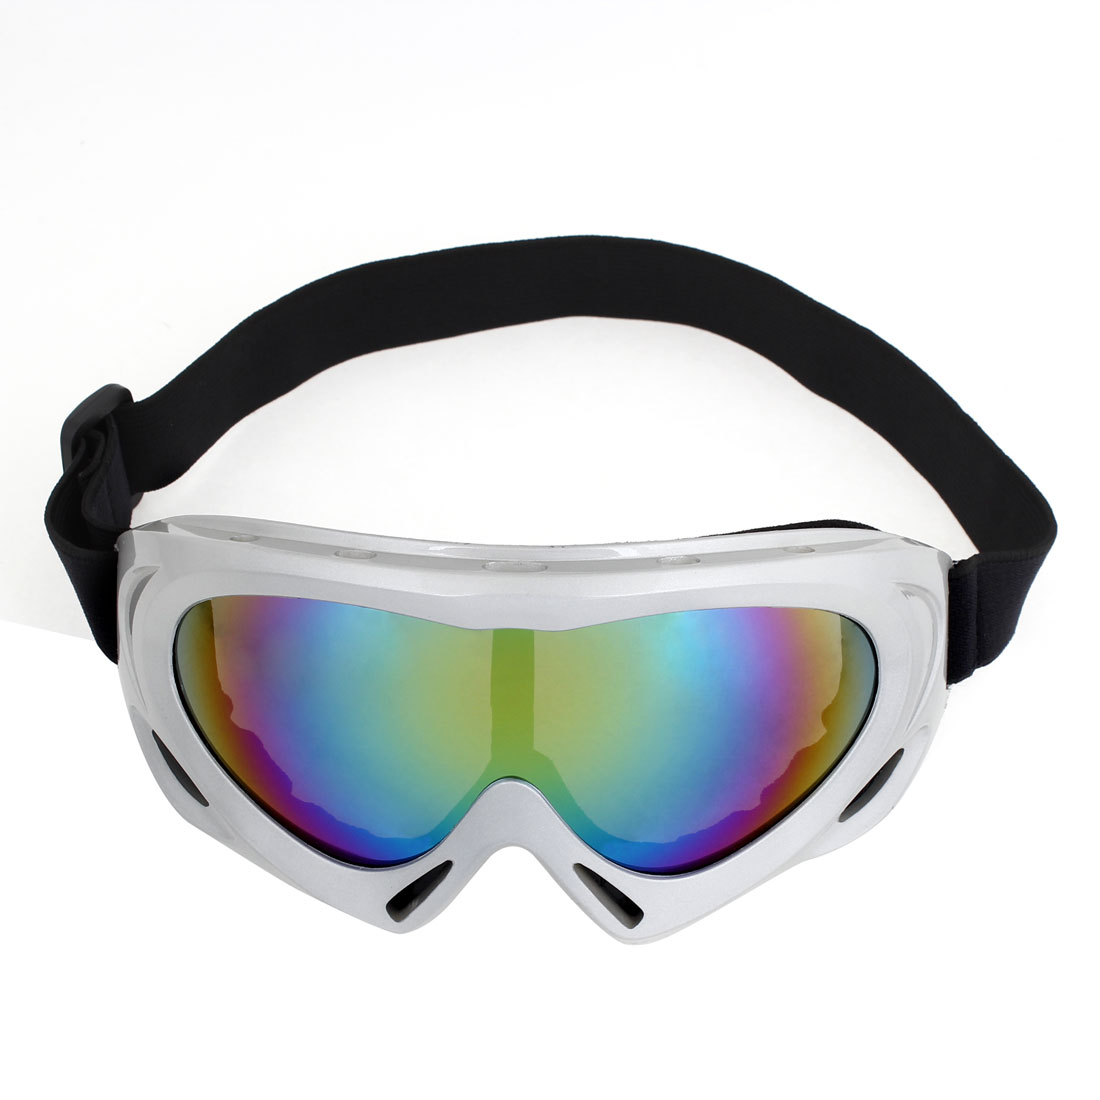 Unisex Gray Rim Modern Goggle Design Ski Snow Snowboarding Colored Lens